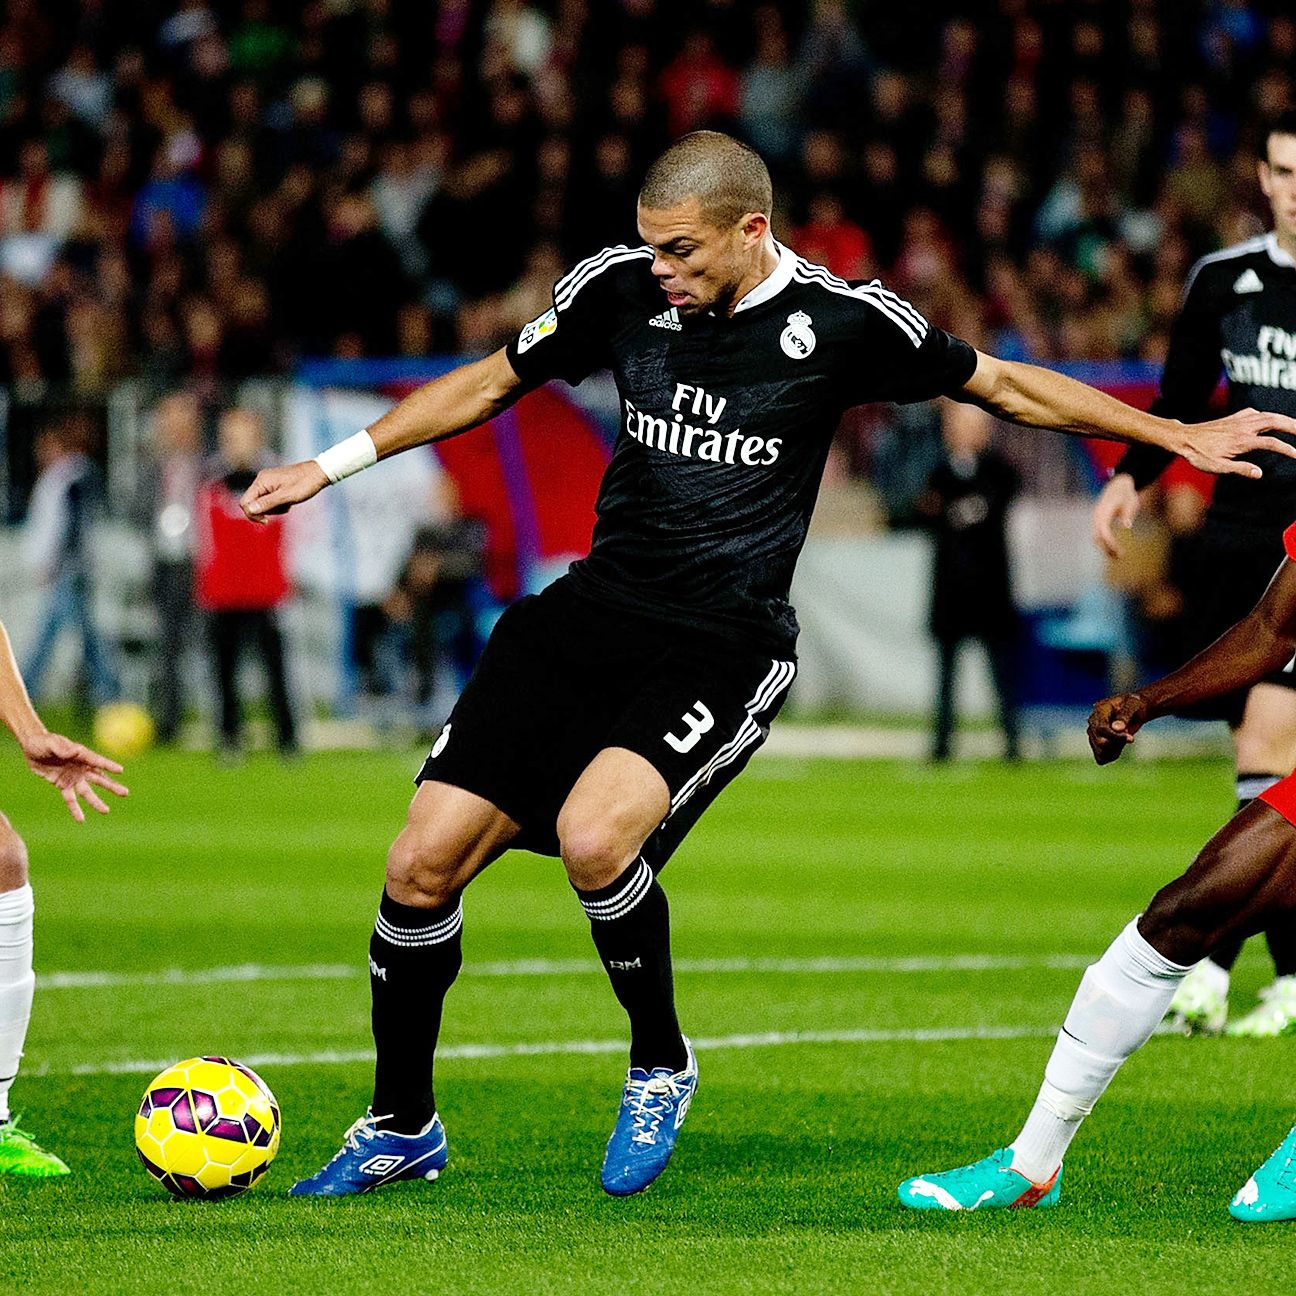 Pepe provided the necessary muscle in defense to keep Real in front at Almeria.